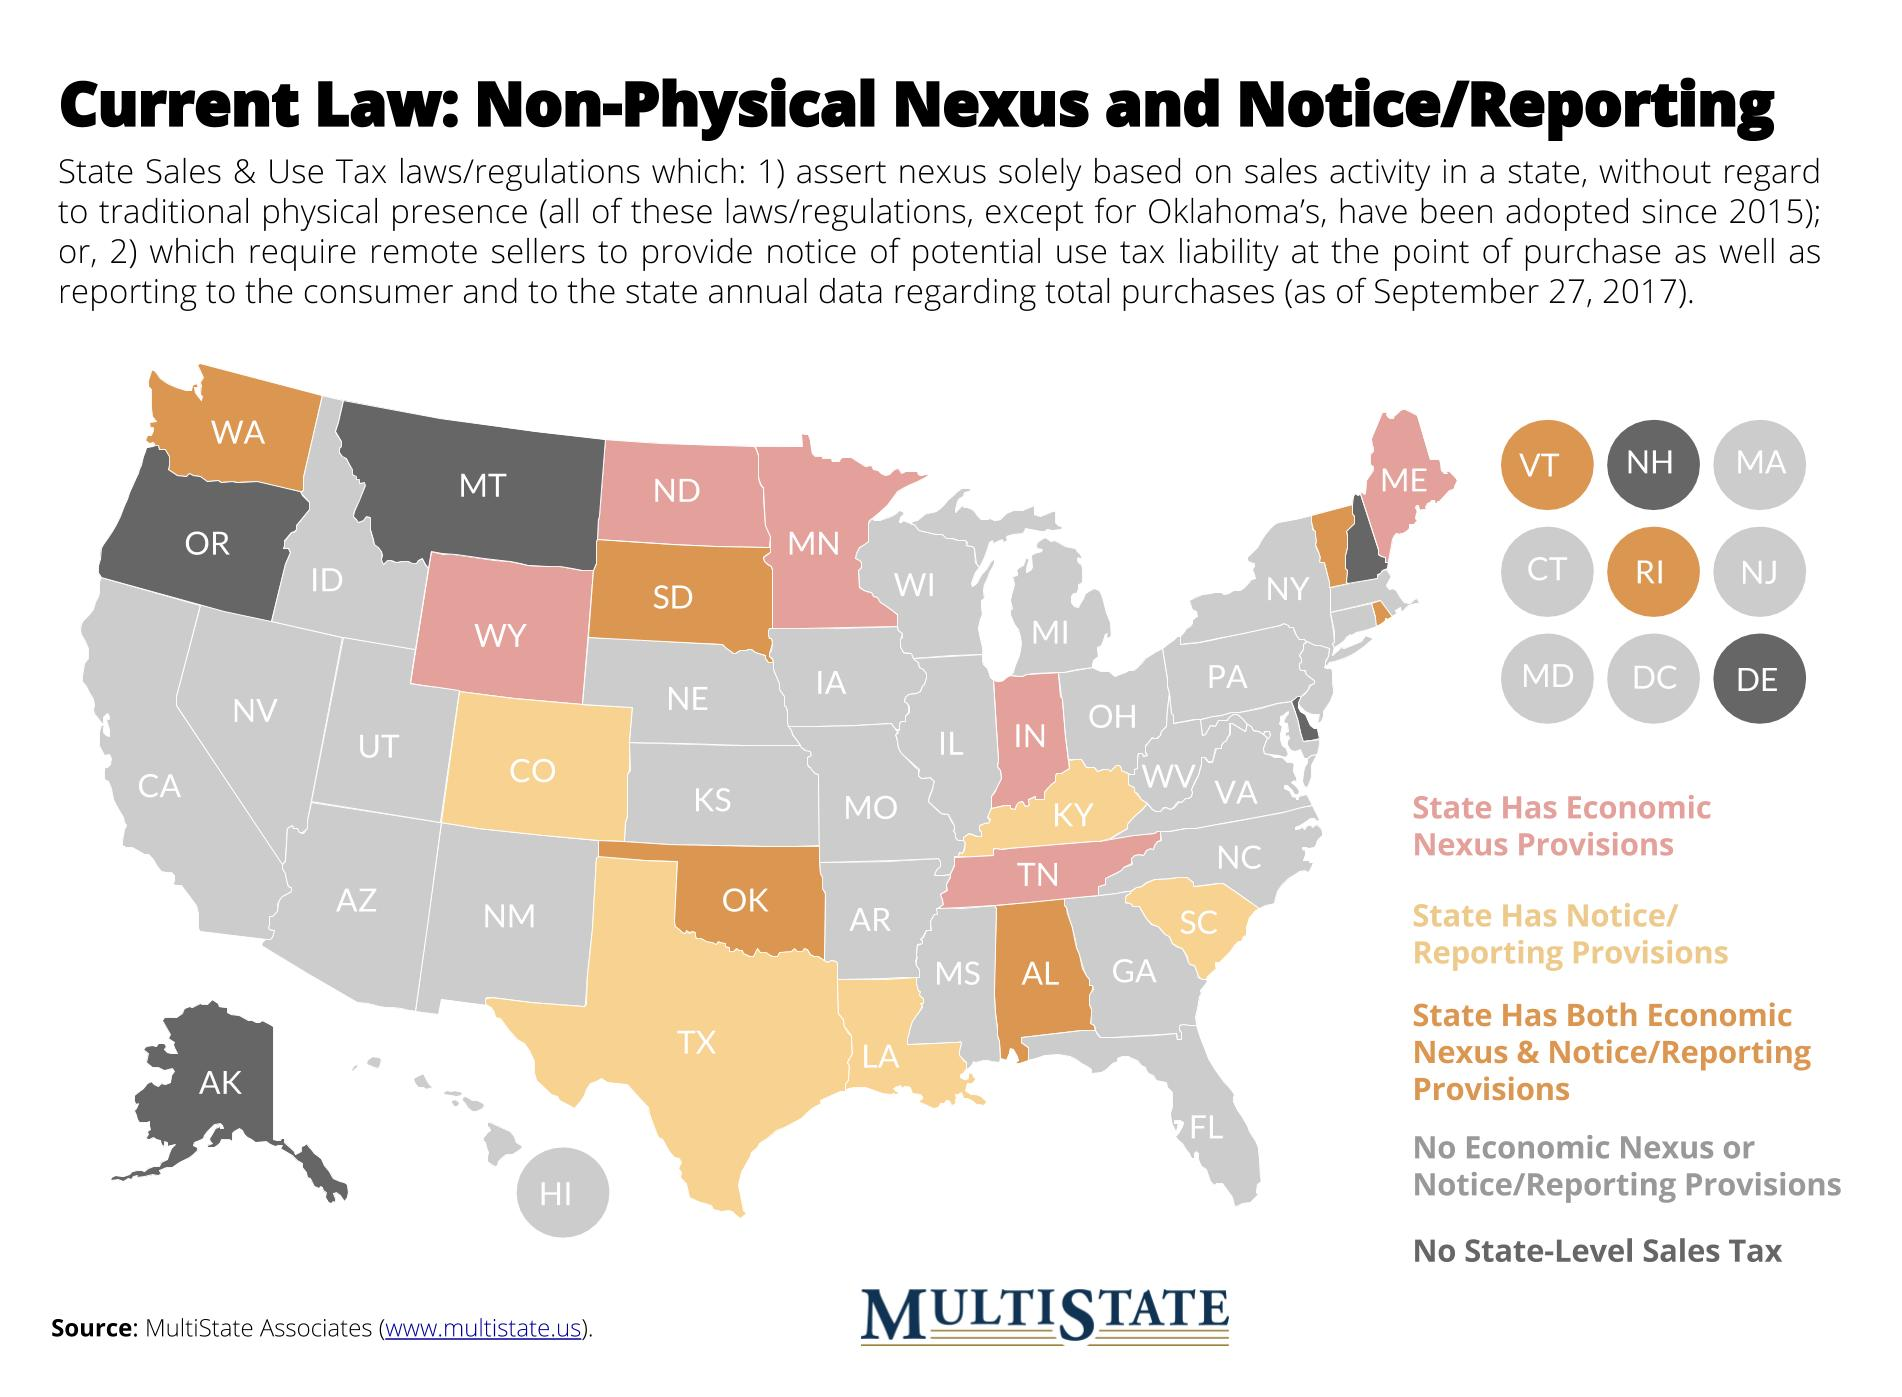 UPDATED MAP 1- Current Law- Non-Physical Nexus and Notice2FReporting.jpg